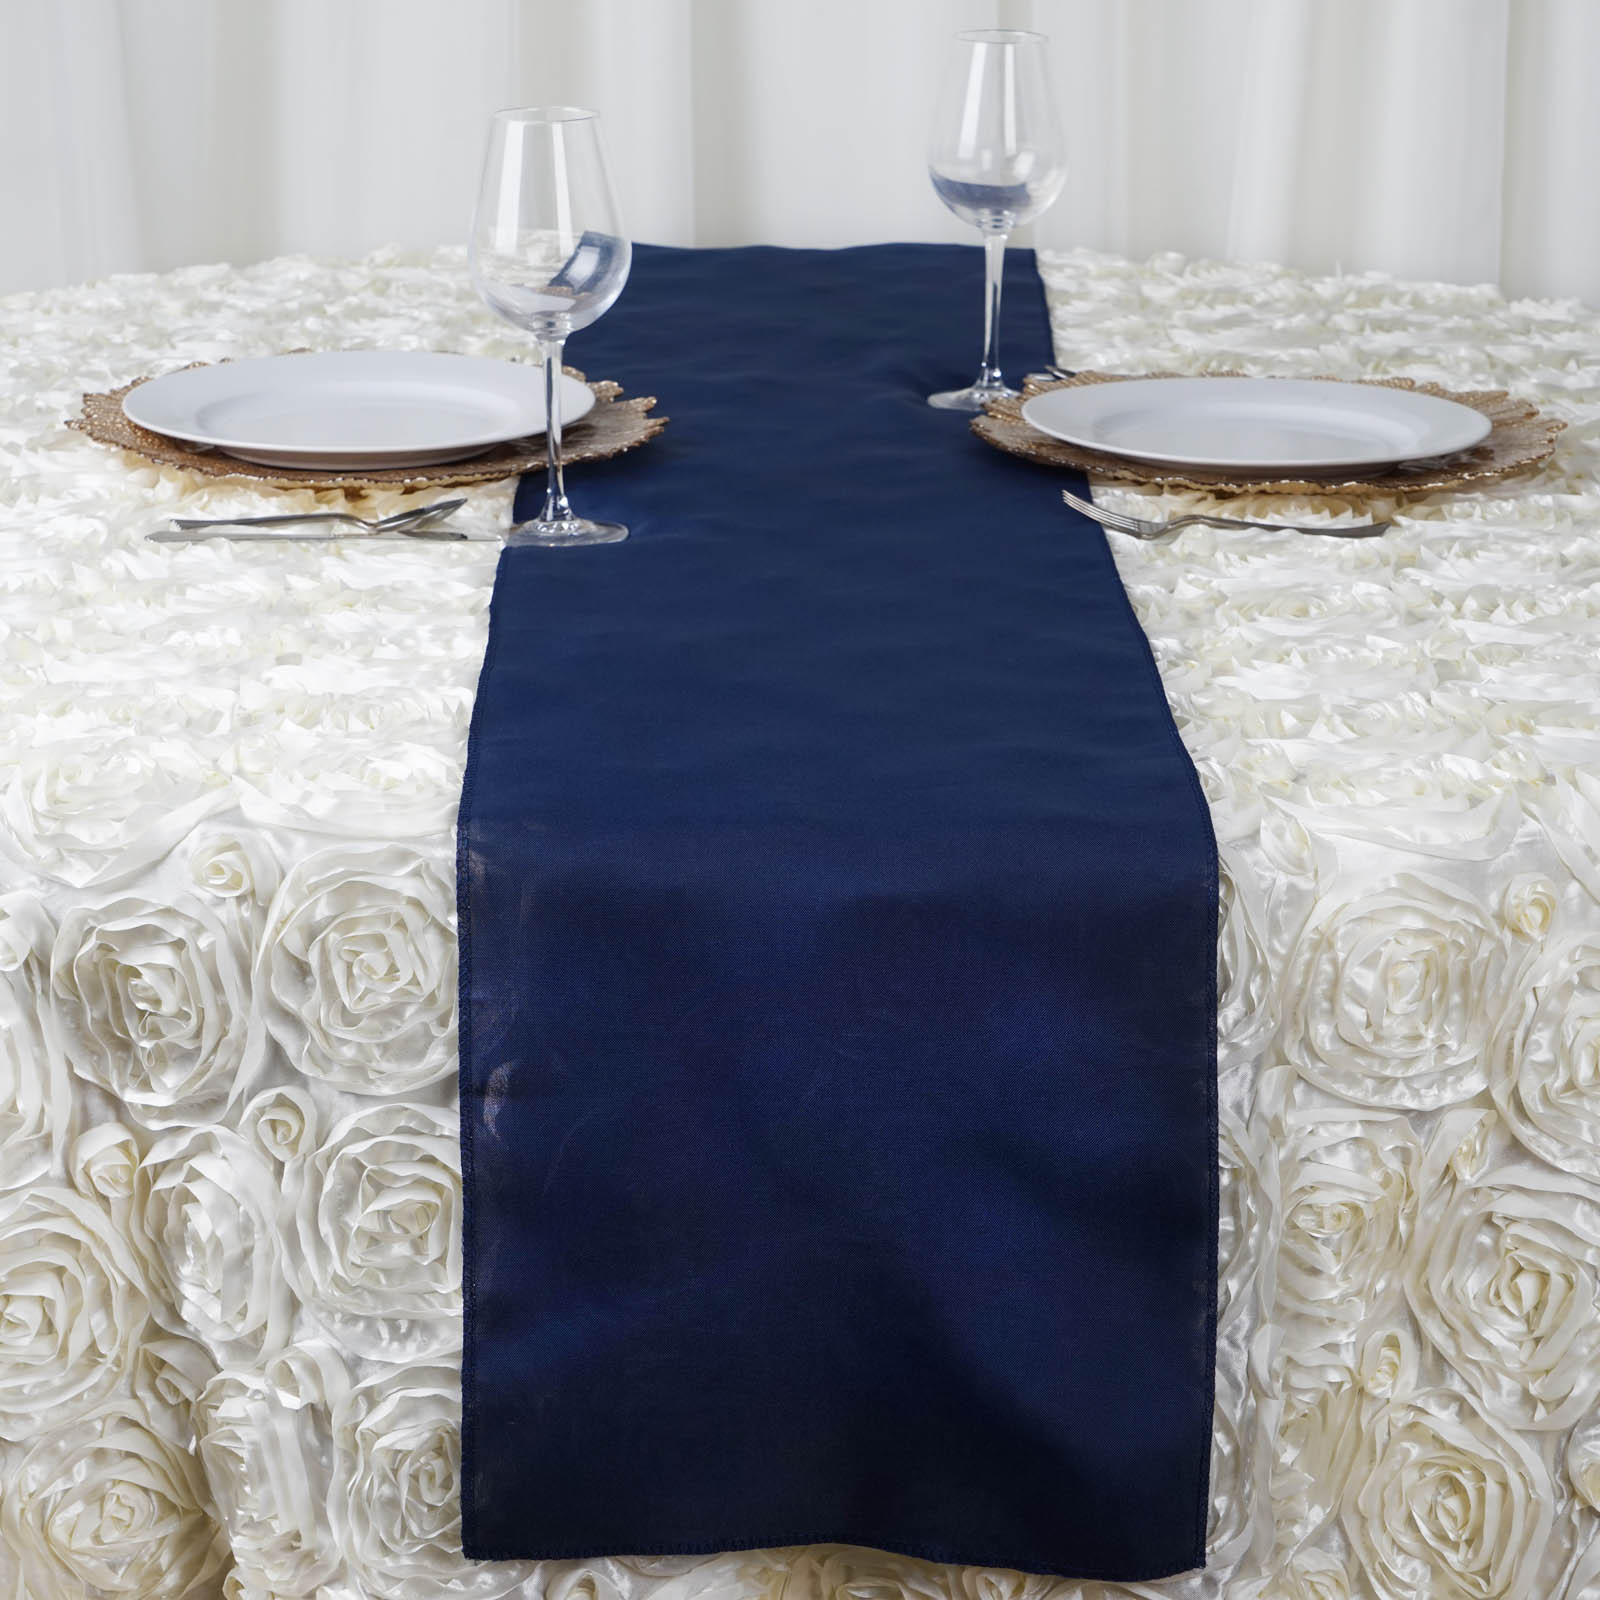 25 POLYESTER 12x108 Table RUNNERS Wholesale Wedding Party Reception Lin